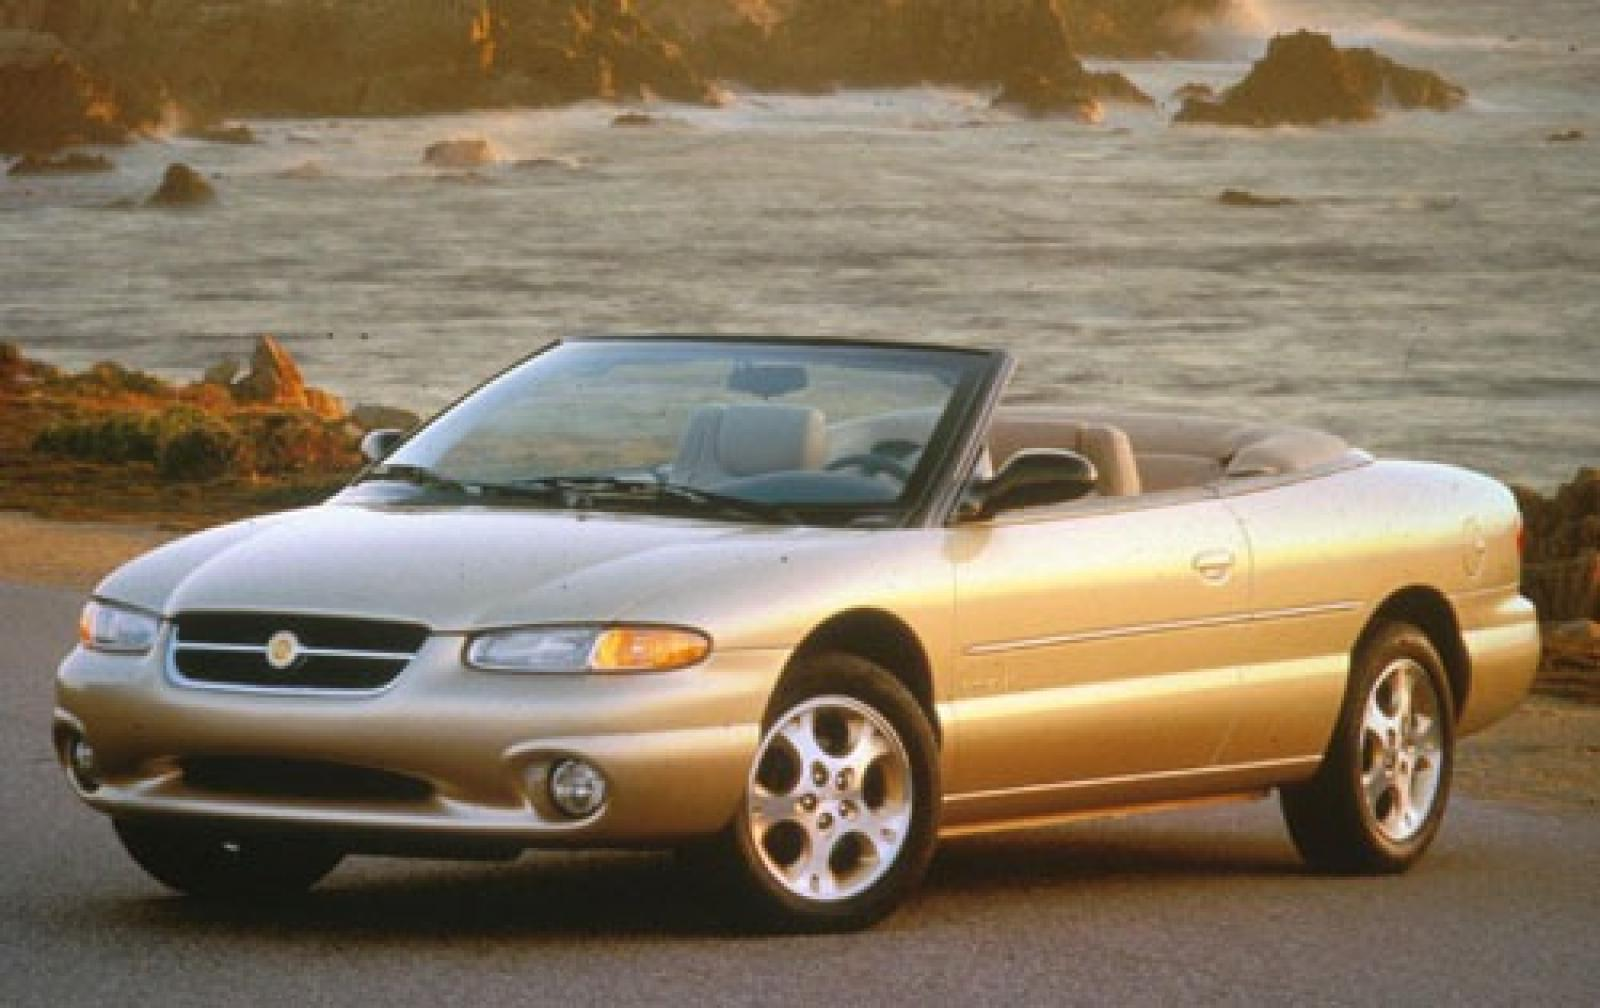 1998 chrysler sebring information and photos zombiedrive. Black Bedroom Furniture Sets. Home Design Ideas